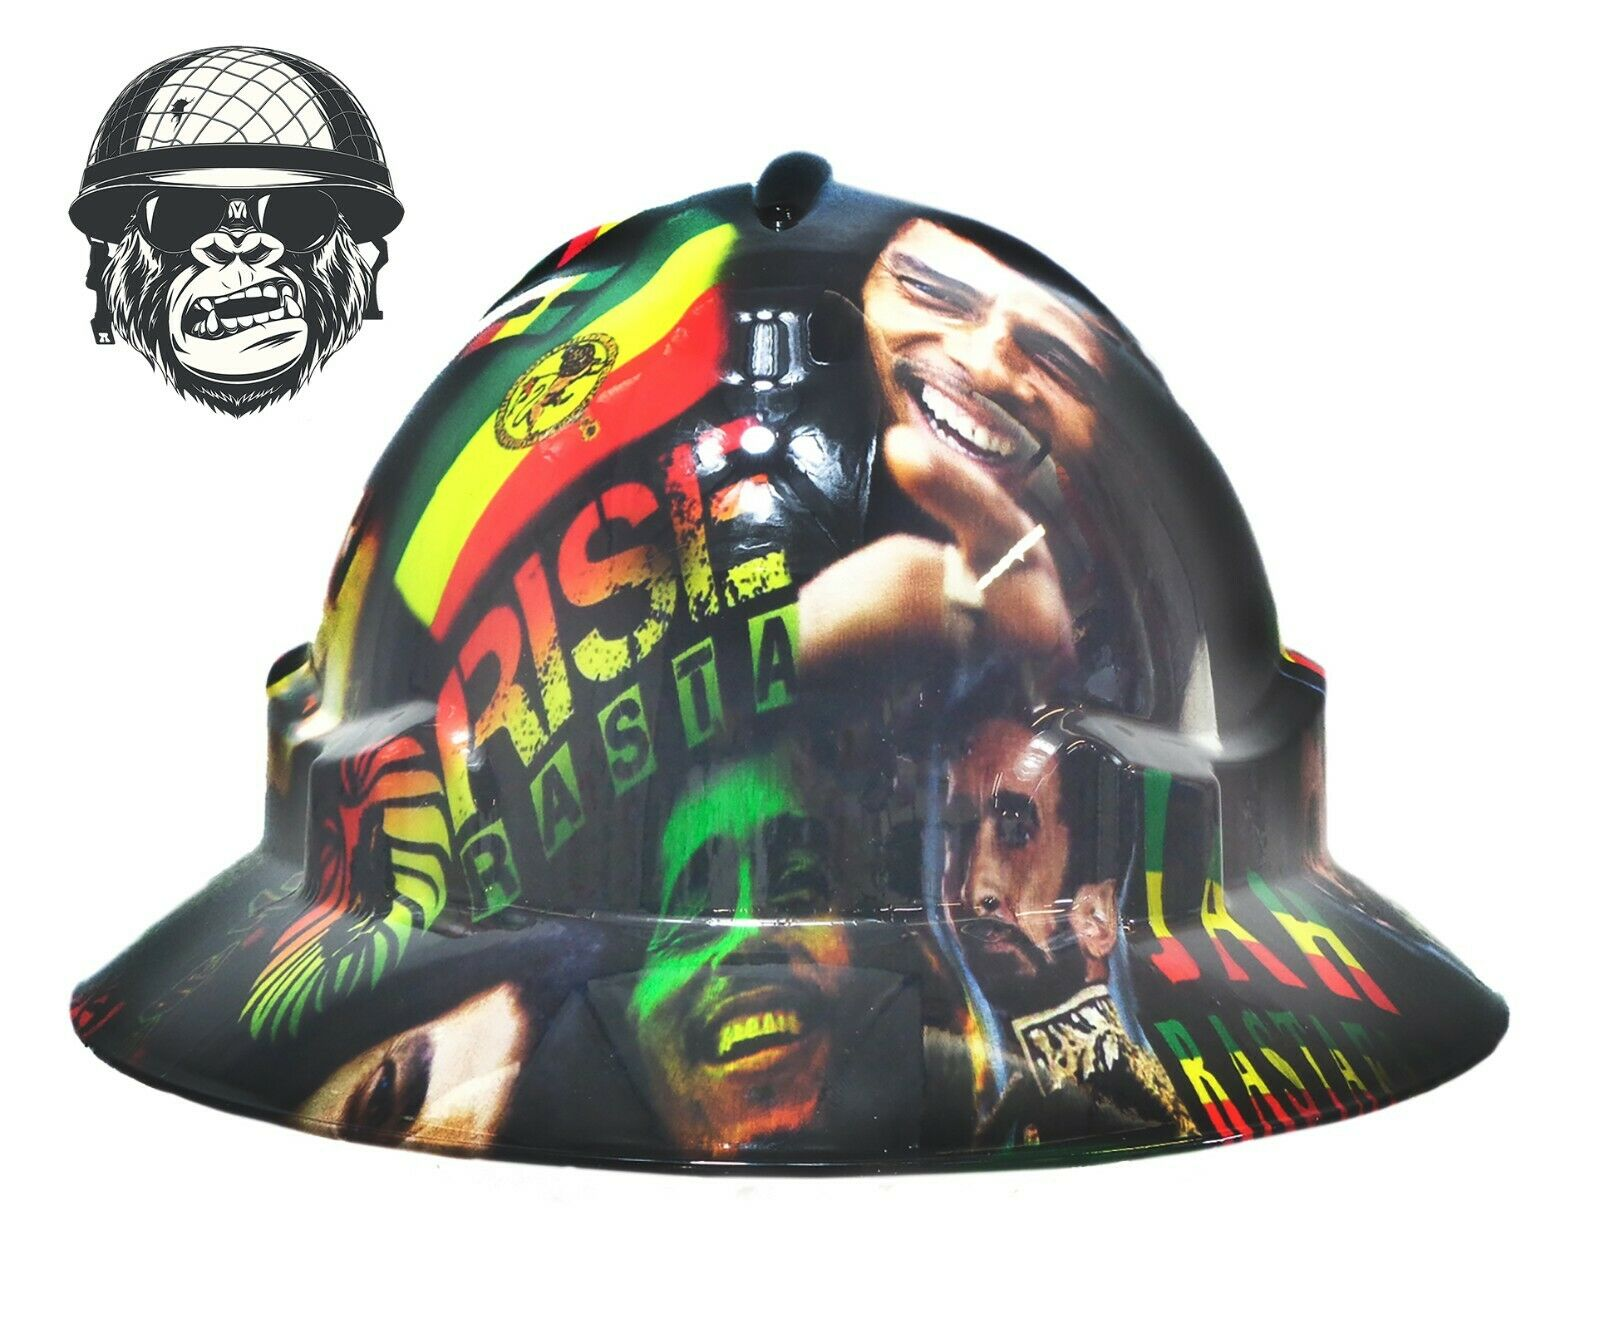 Custom hydrographic wide brim safety hard hat rasta BOB MARLEY WIDE